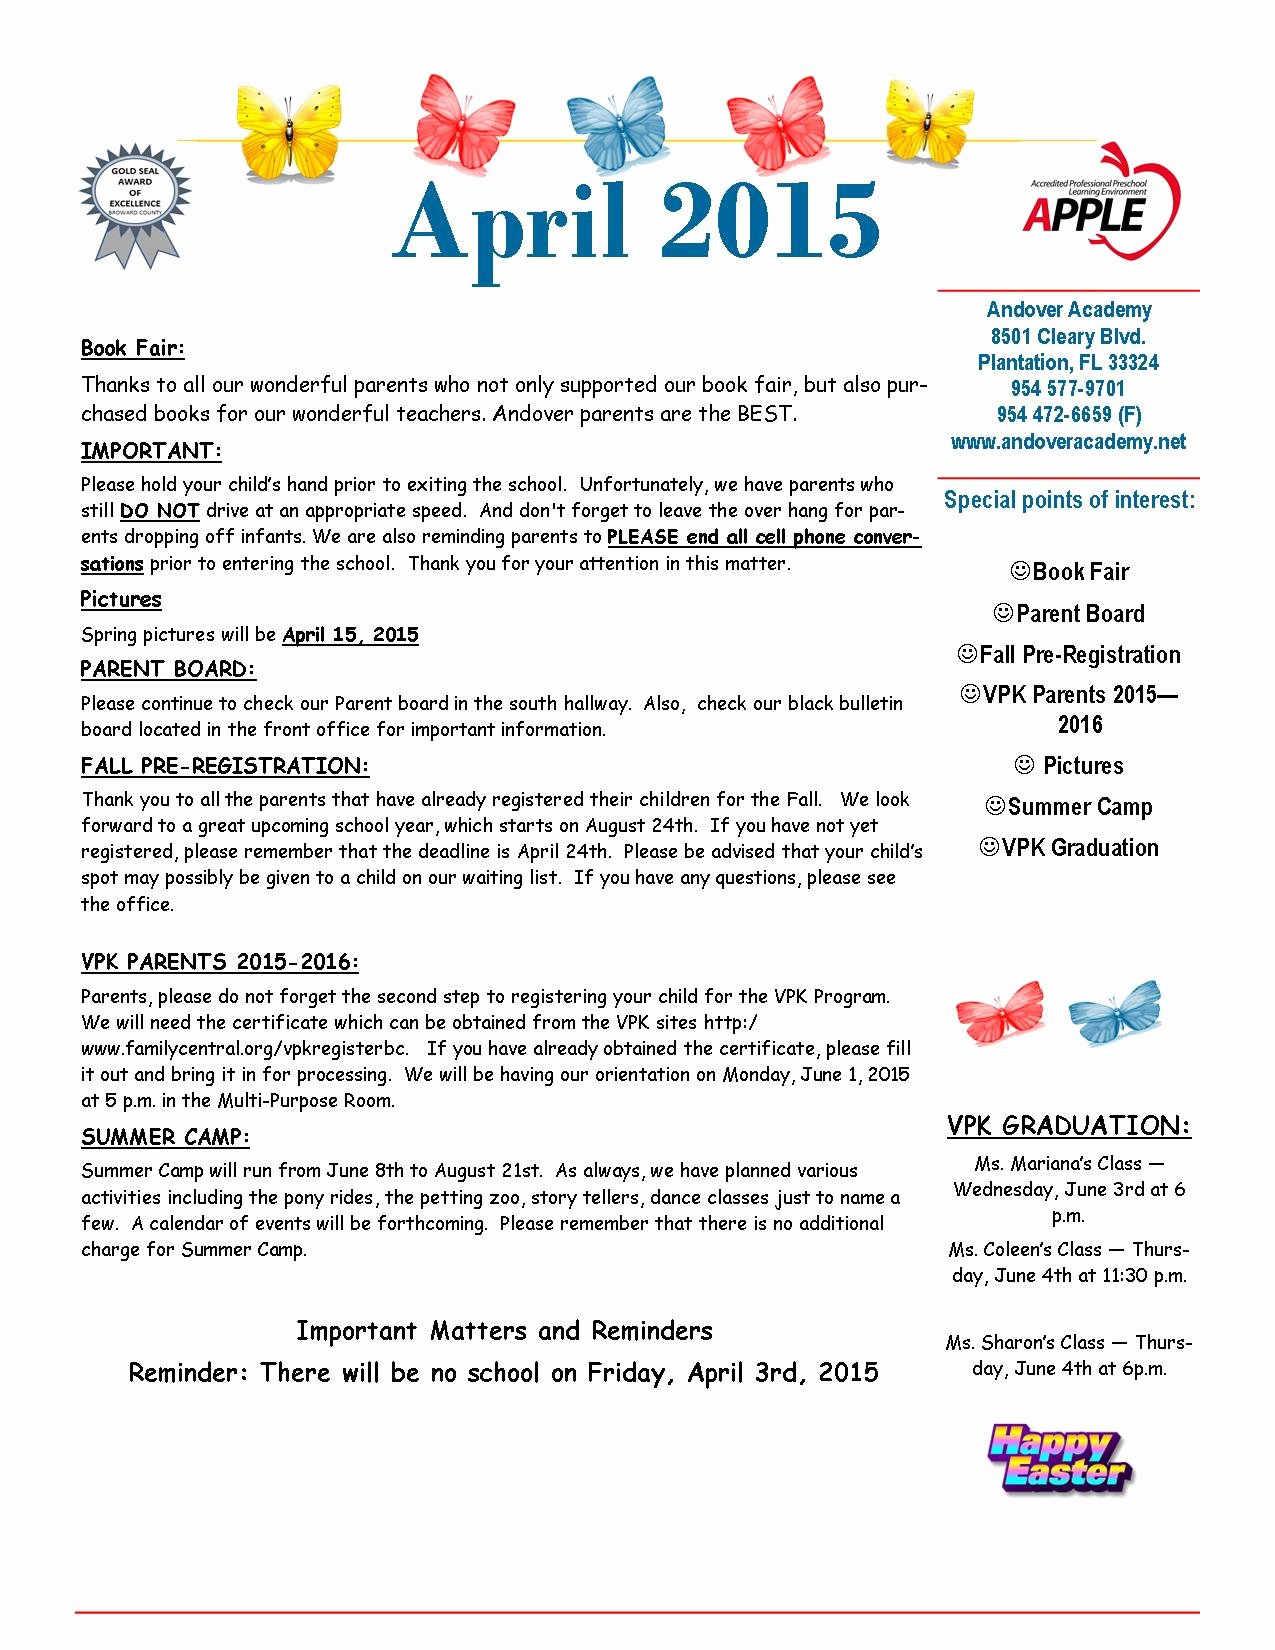 April Newsletter Template Awesome Newsletter andover Academyandover Academy